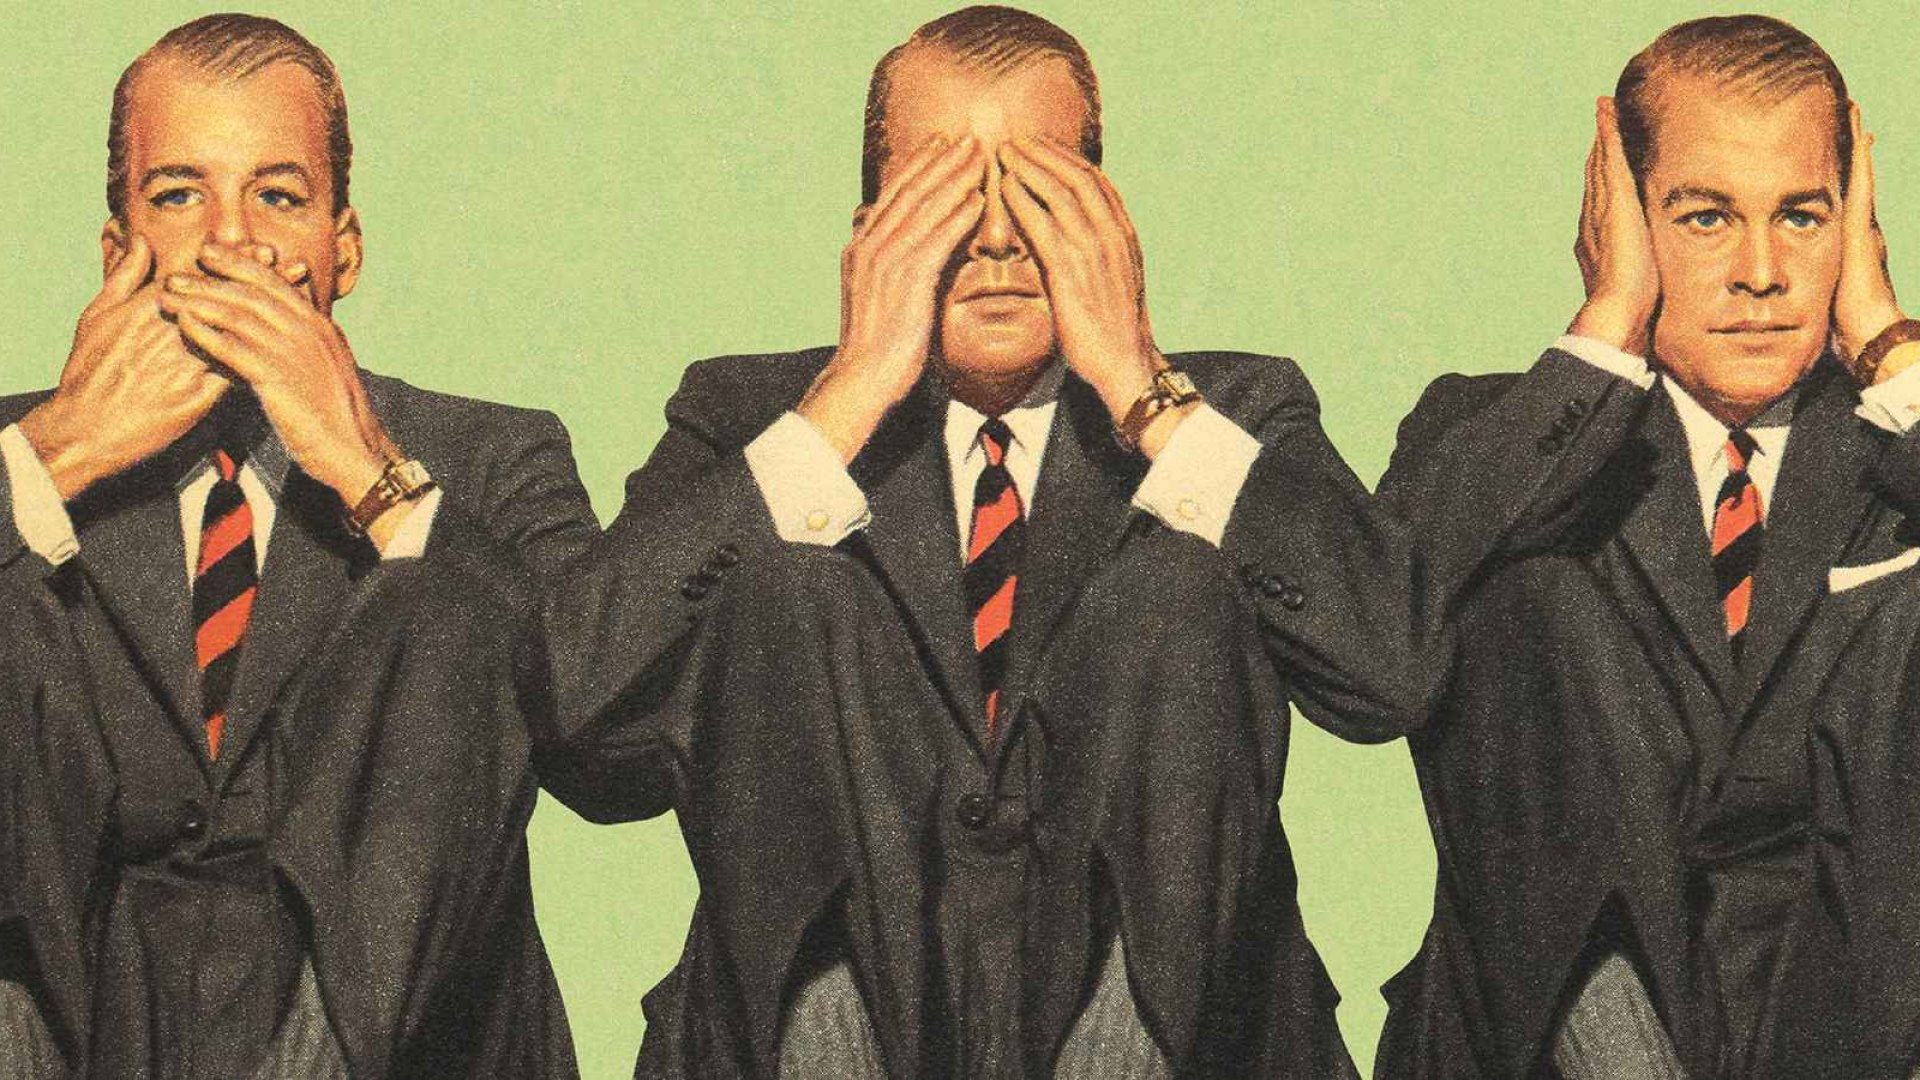 The Brutally Honest Way Today's Top Companies Are Giving Employee Feedback